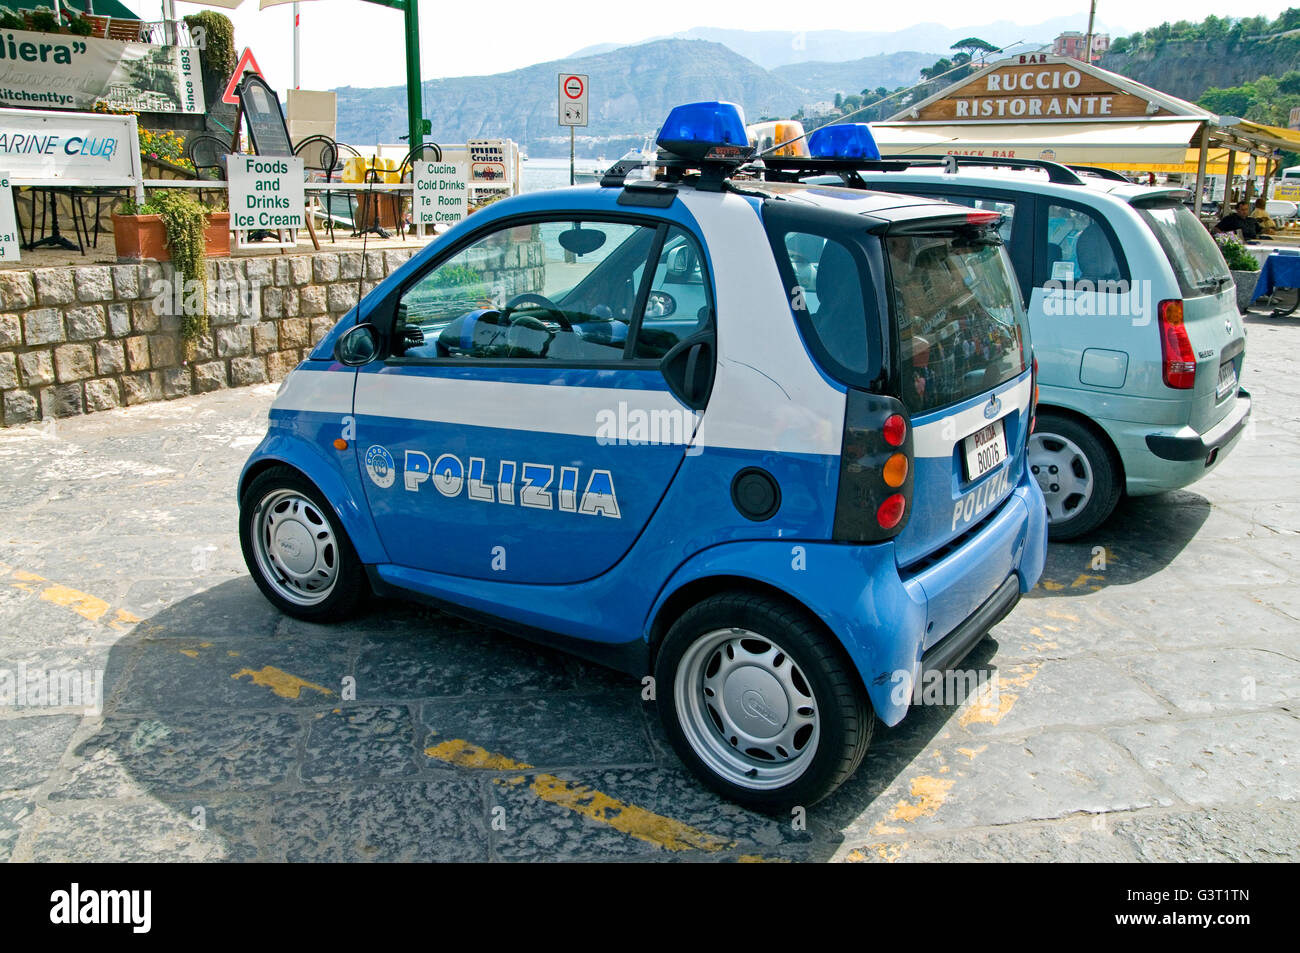 In Sorrento, Near Naples, Italy, The Police Also Use Smart. Accredited Masters Programs Medigap Plan G. Comparative Advantage Examples. Vacation To New Zealand Dentists In Wakefield. Praxair Employee Benefits Bail Bond Colorado. Open Source Sales Software Car Crash Lawyers. Graphic Arts And Design Blair School Of Music. Pa Treatment And Healing Get Rid Of Allergies. Project Management And Crm Is Lens Com Legit